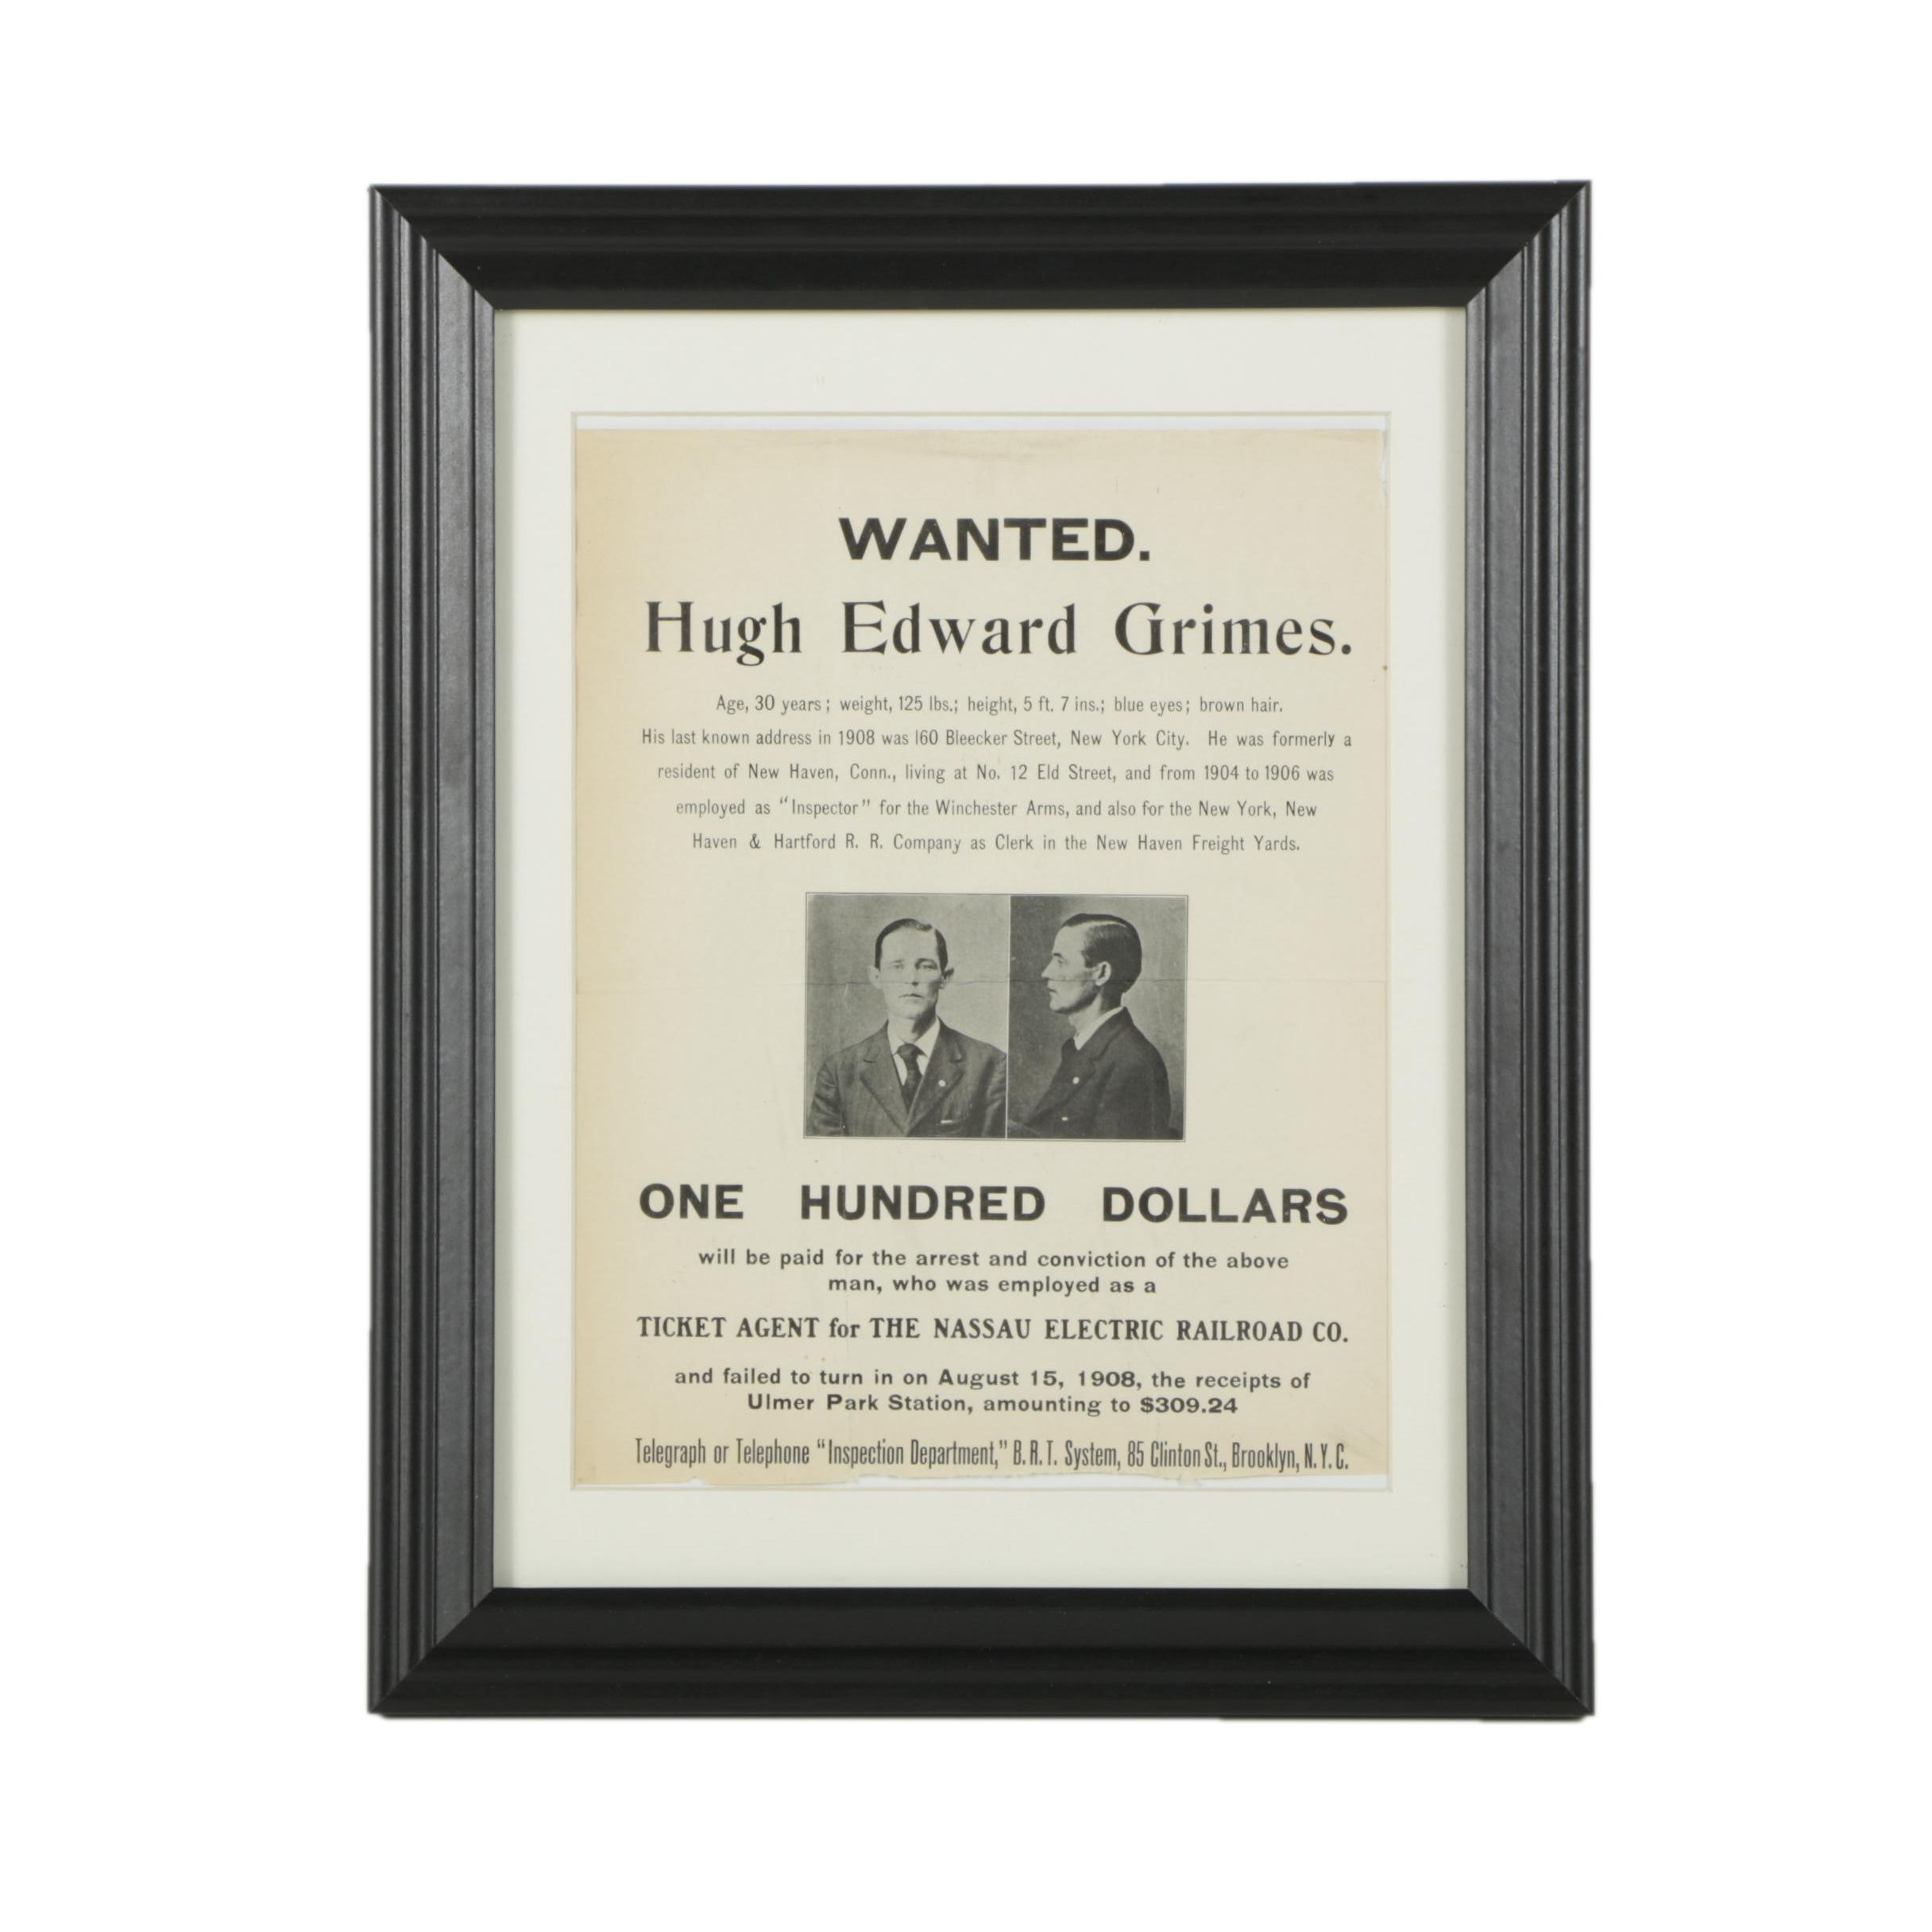 1908 Wanted Fugitive Poster from New York